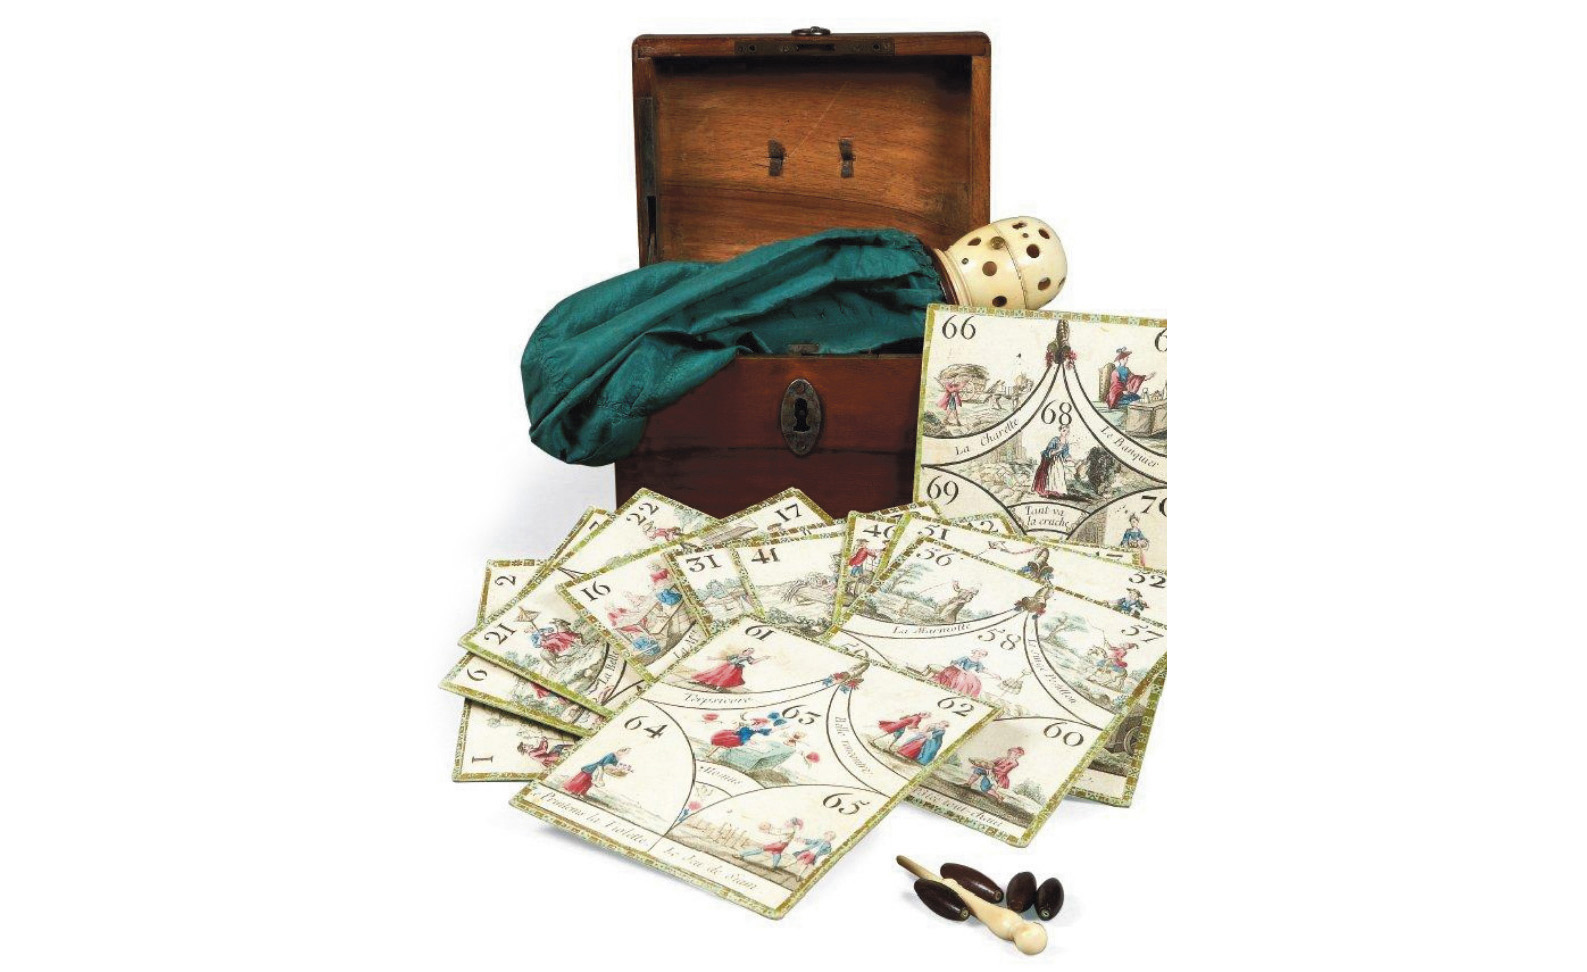 Paris, Aufrère, chess-board maker, Rue Planche Mibrai, c. 1770-1780, cavagnole set in its wooden box, complete with 14 cards with colored engraved decoration, green silk bag with ivory dome, 68 hollow wooden playing pieces and ivory stylus. Paris, Drouot, December 19, 2012. Pierre Bergé & Associés auction house. Mr. Forgeot Sold for €8,000